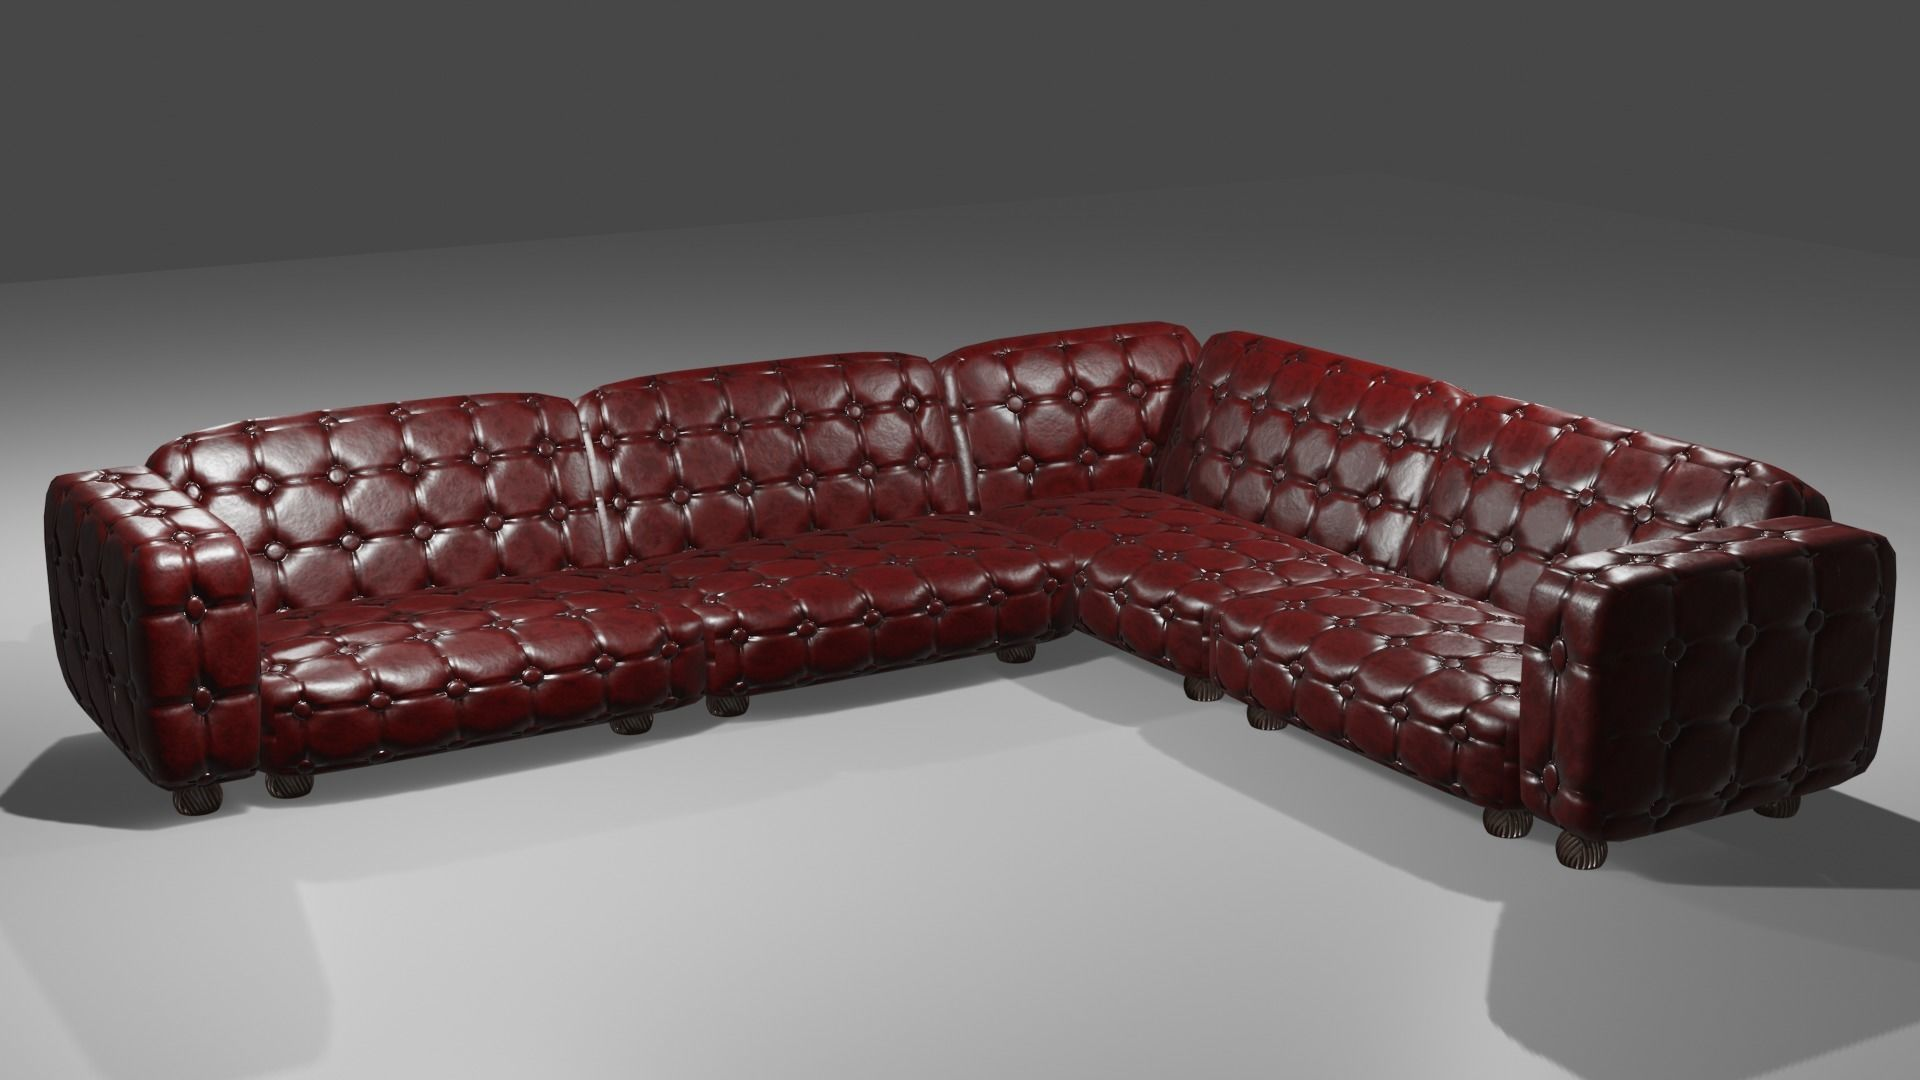 Game ready dark brown red leather sofa couch 3D model | 3D model